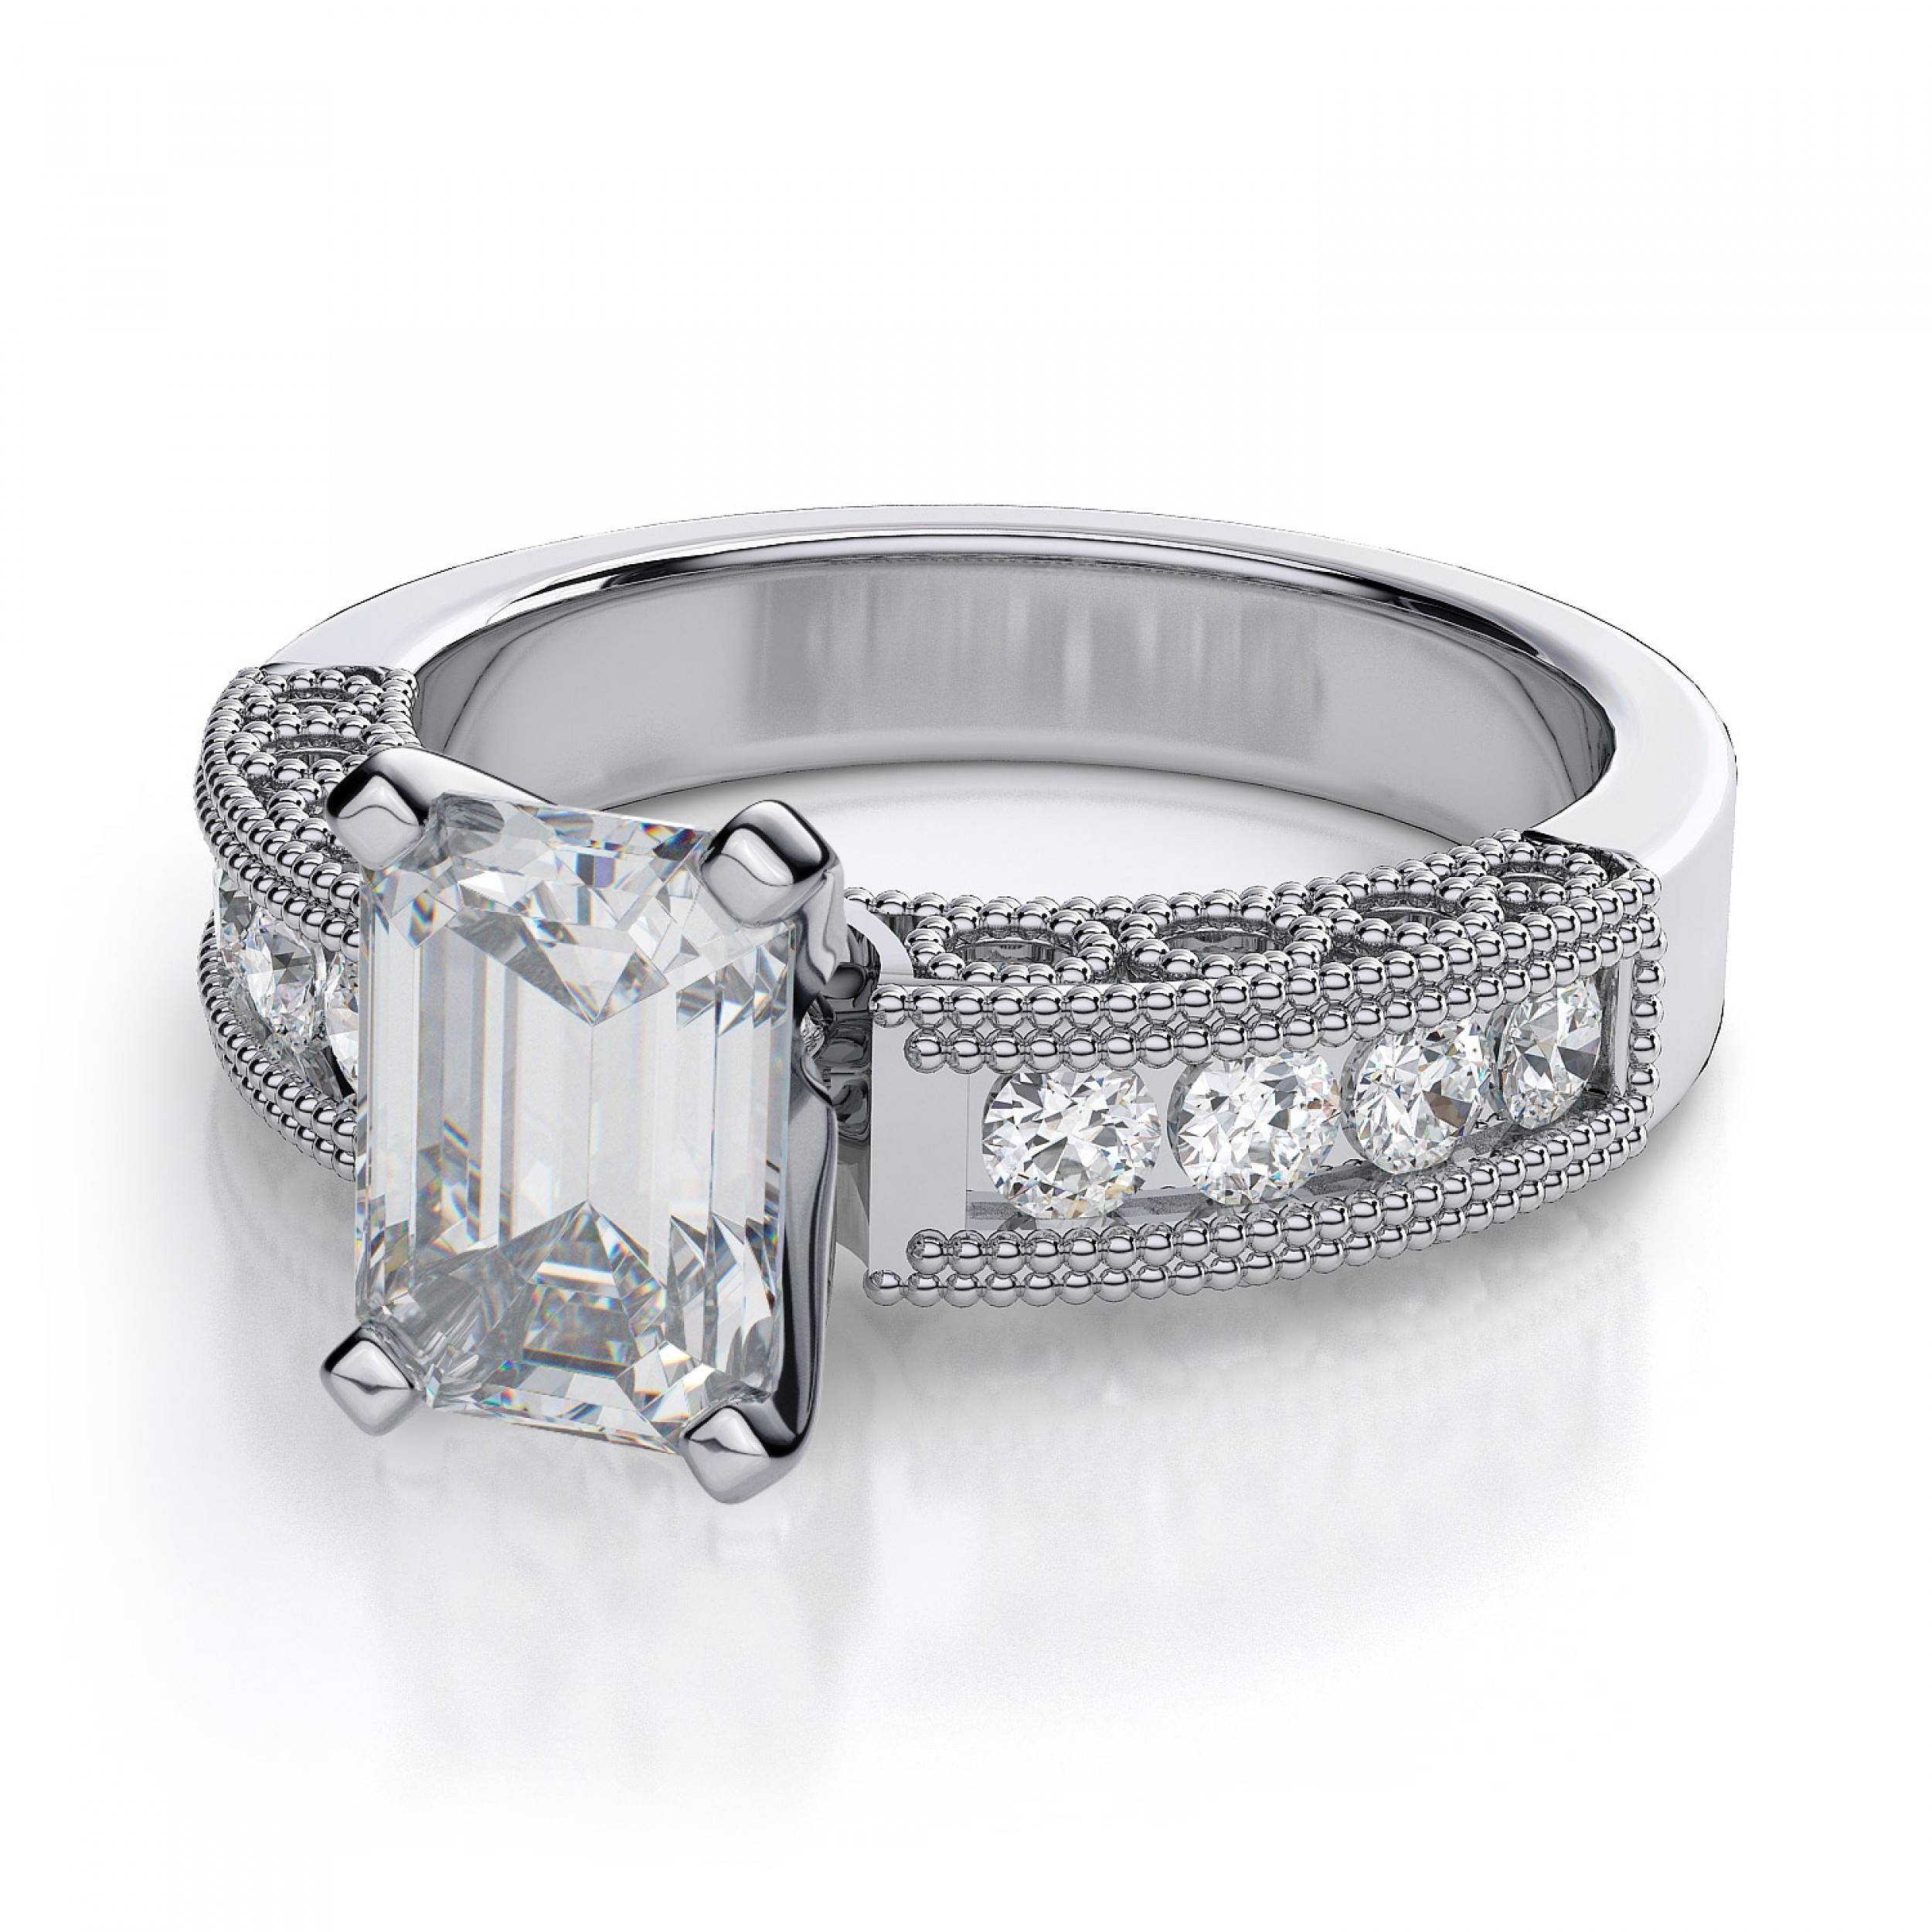 40Ctw Vintage Emerald Cut Sidestones Diamond Engagement Ring In Platinum Wedding Rings Settings (Gallery 4 of 15)